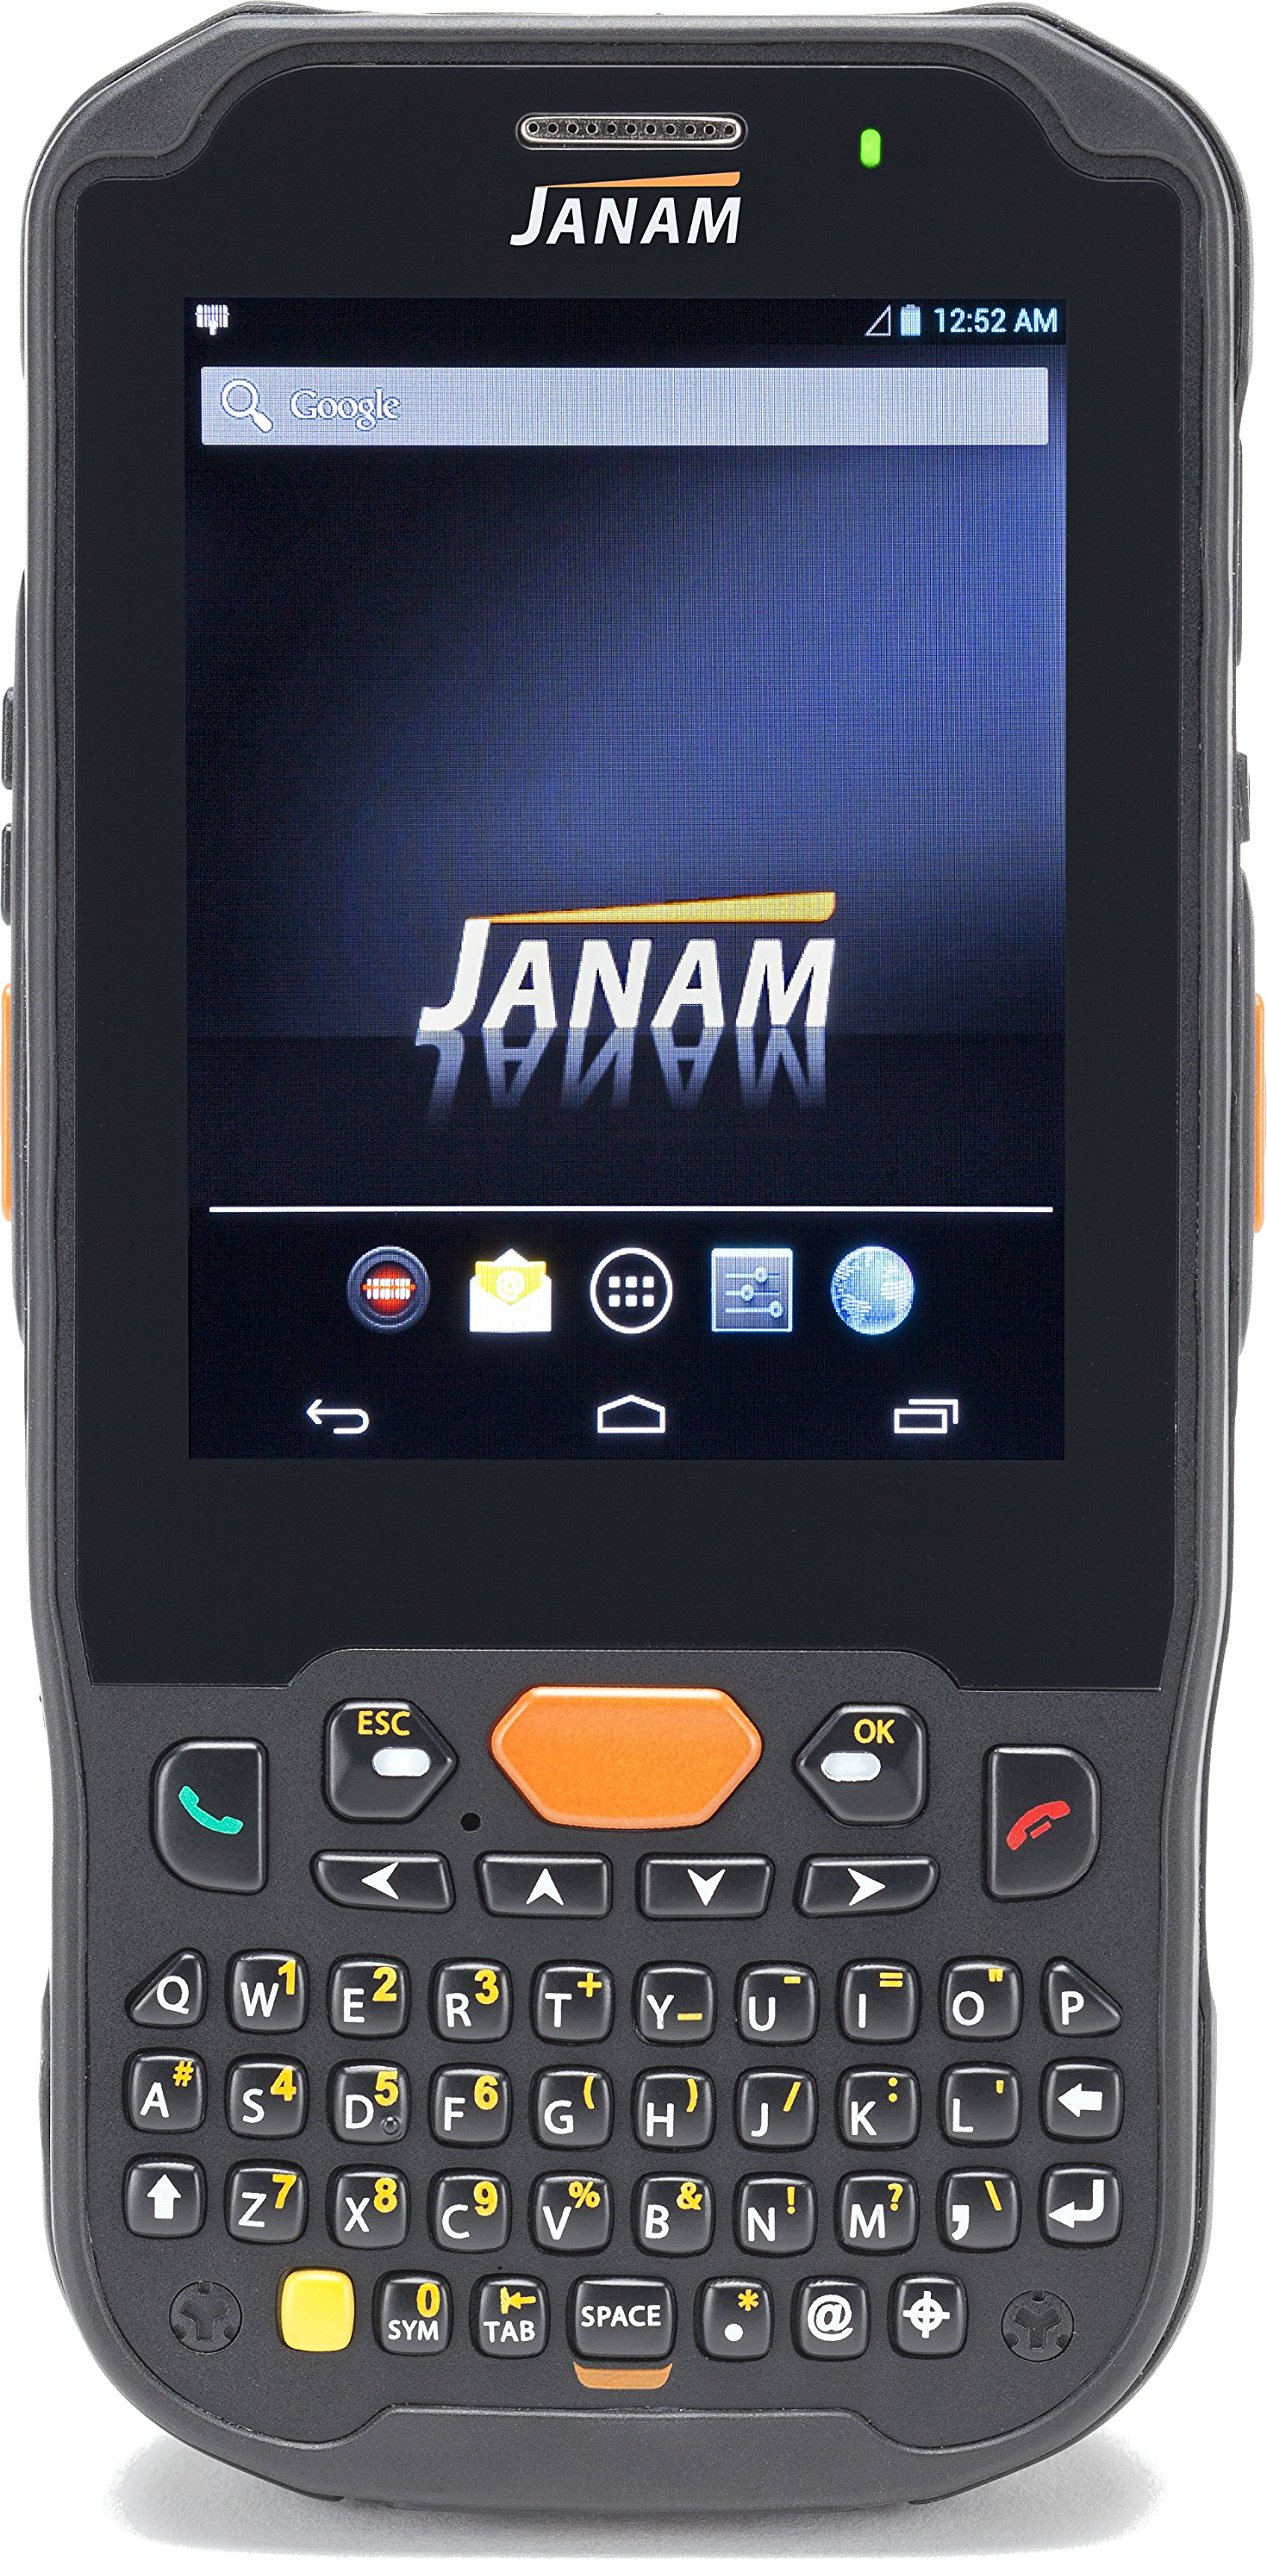 Janam XM5-0NHARDGV00 Series XM5 Handheld Computing Devices, Android JB 4.2, UMTS/HSPDA/HSUPA/GSM, 802.11ABGN, GPS, RFID, Bluetooth, Camera, 4000 mAh, Numeric Keypad by JANAM